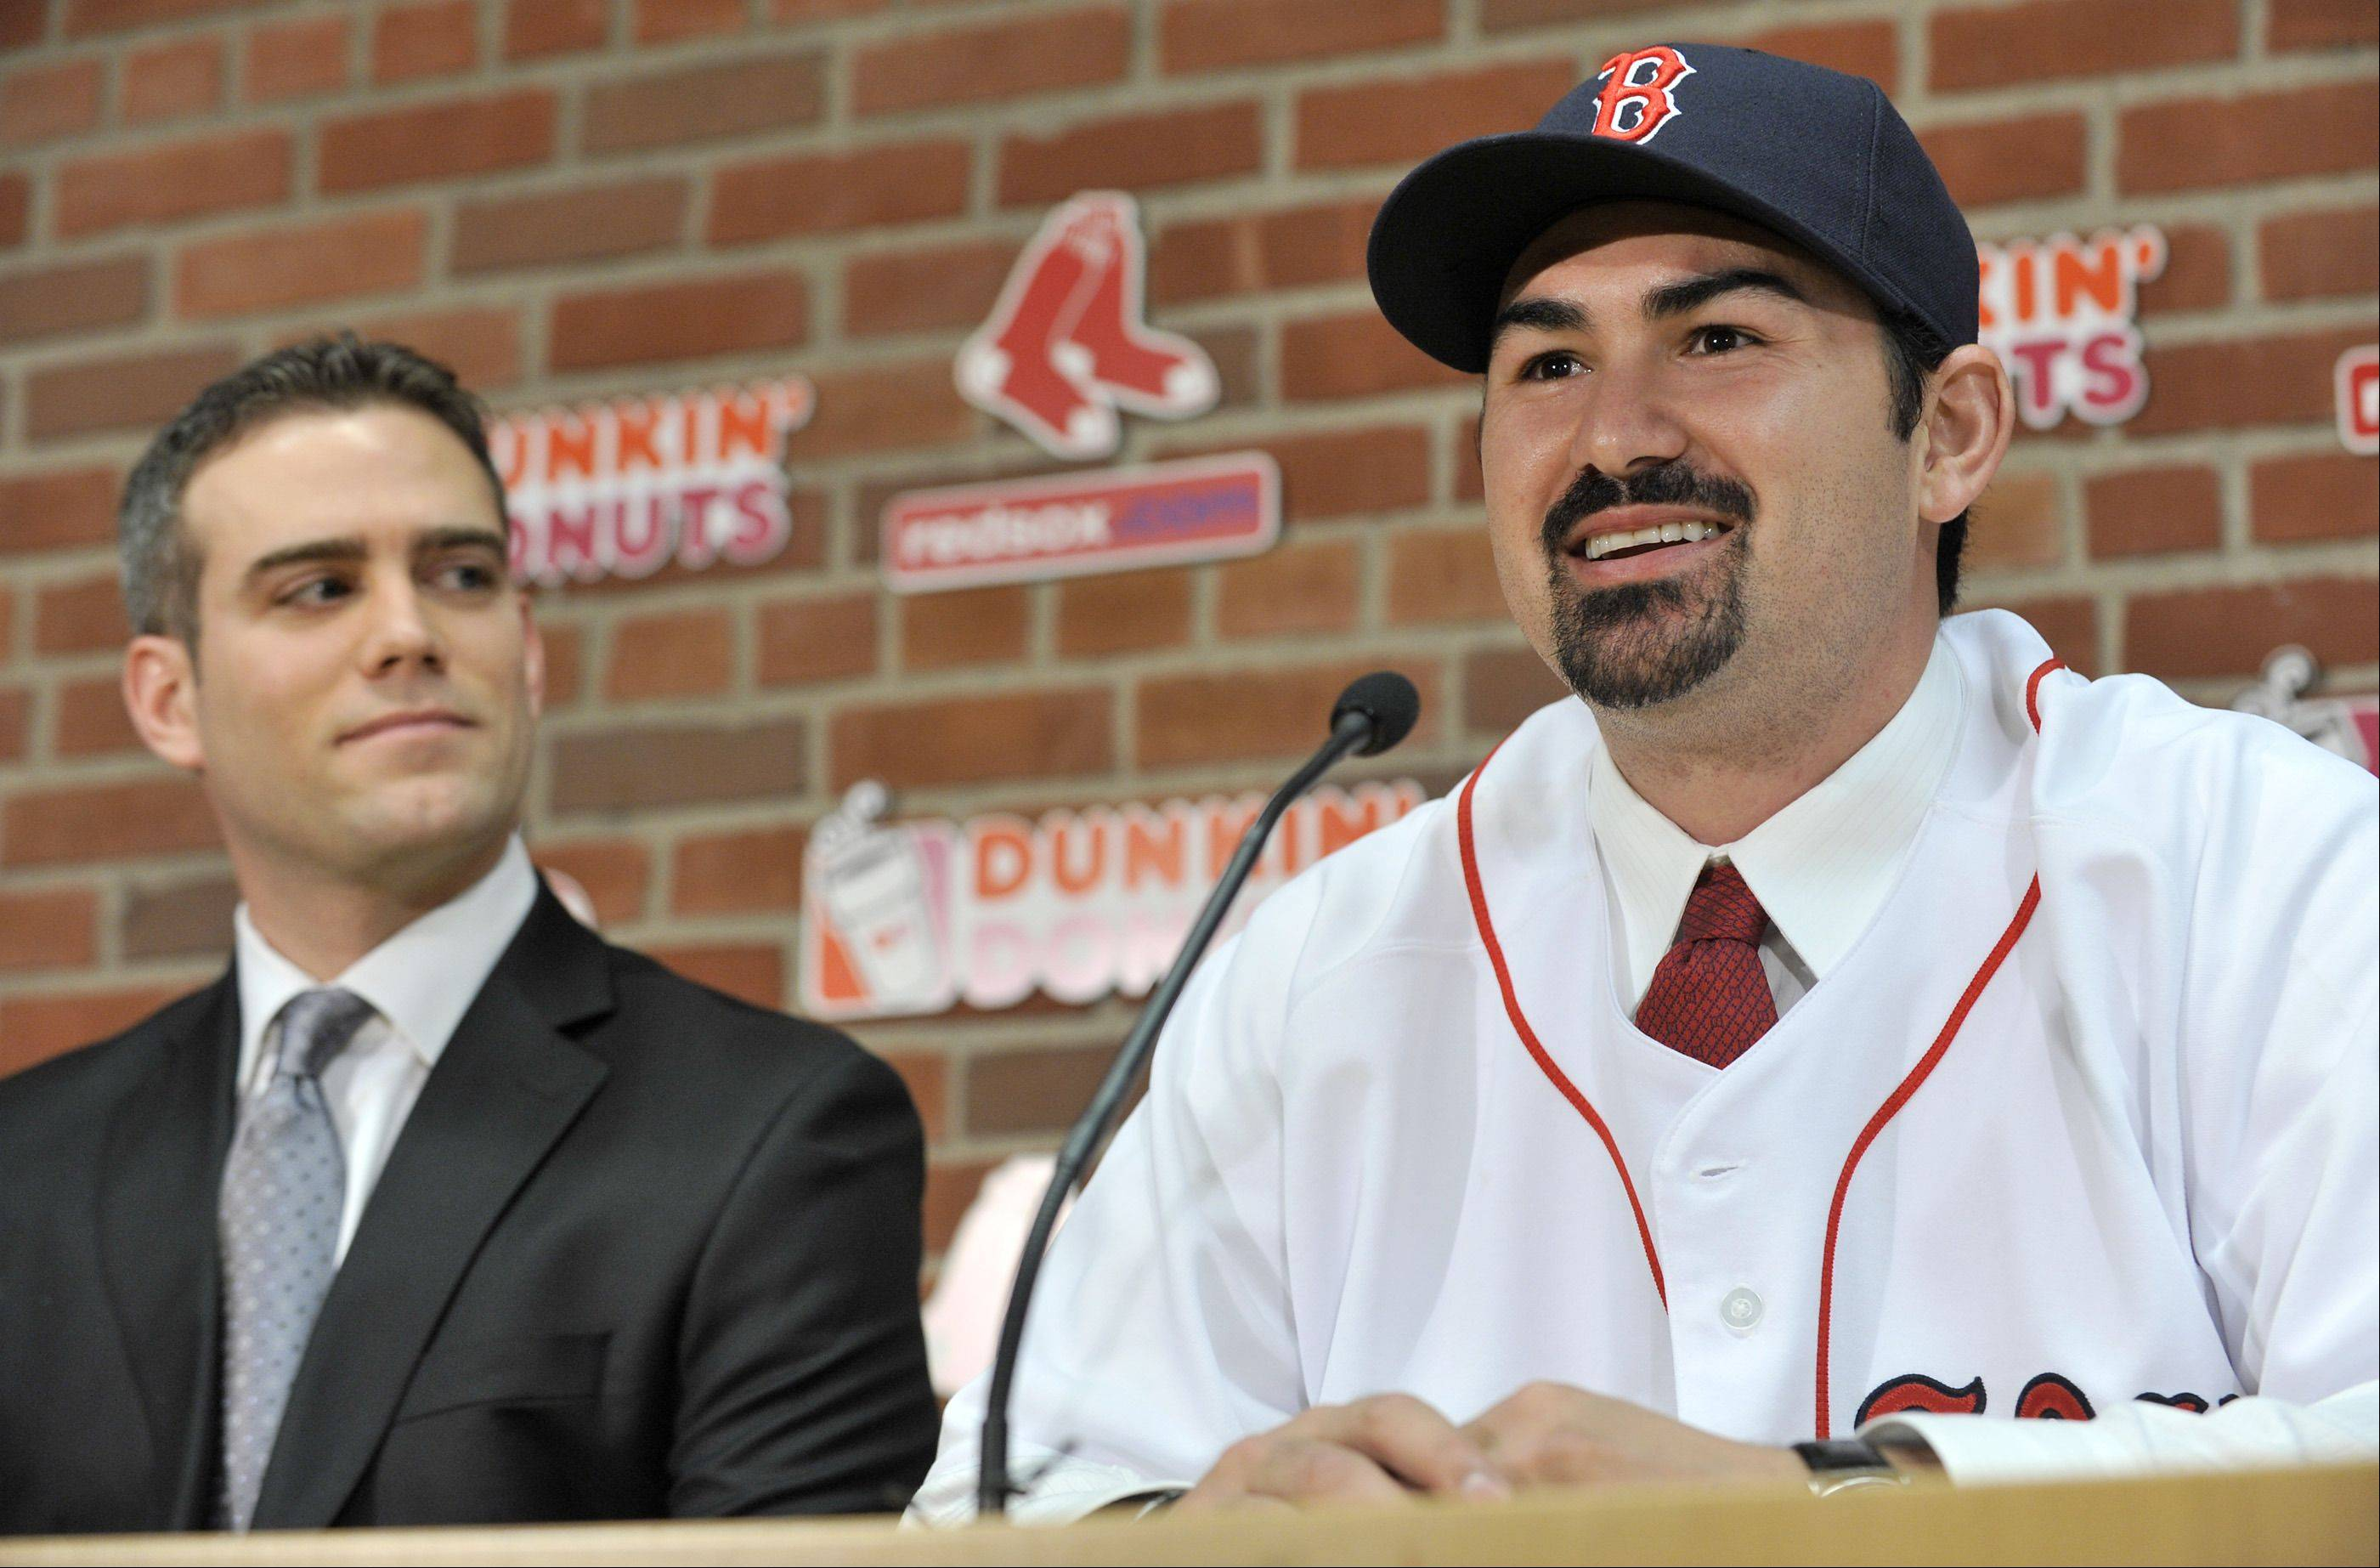 New Boston Red Sox first baseman Adrian Gonzalez, right, speaks to reporters as Red Sox General Manager Theo Epstein, left, looks on during a news conference at Fenway Park in Boston, Monday, Dec. 6, 2010. The Red Sox finally landed the All-Star first baseman, acquiring him from the San Diego Padres in exchange for three prospects and a player to be named later.